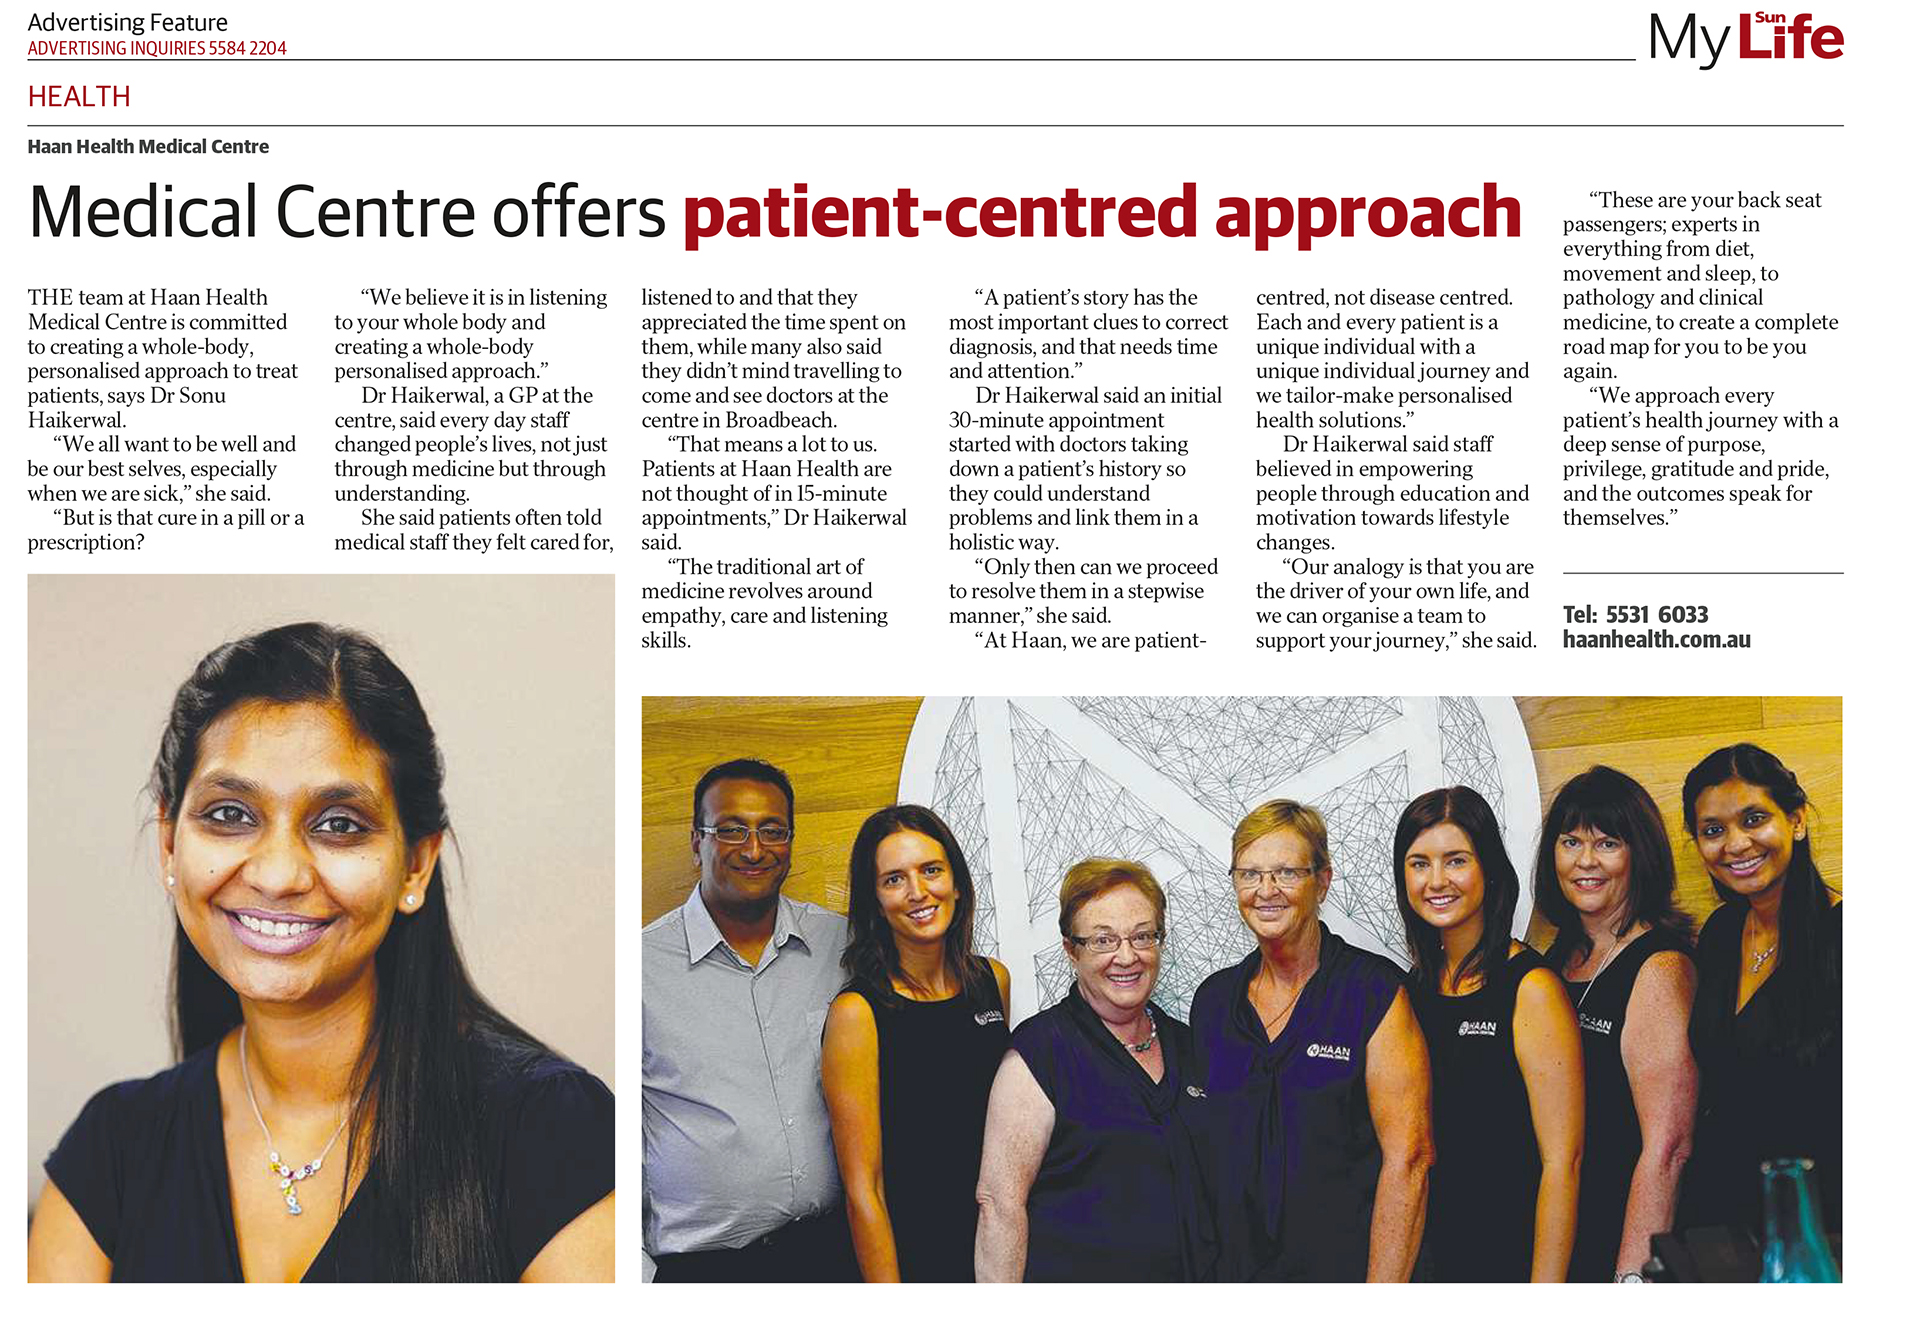 A long term patient-centred approach to Gold Coast Health Care